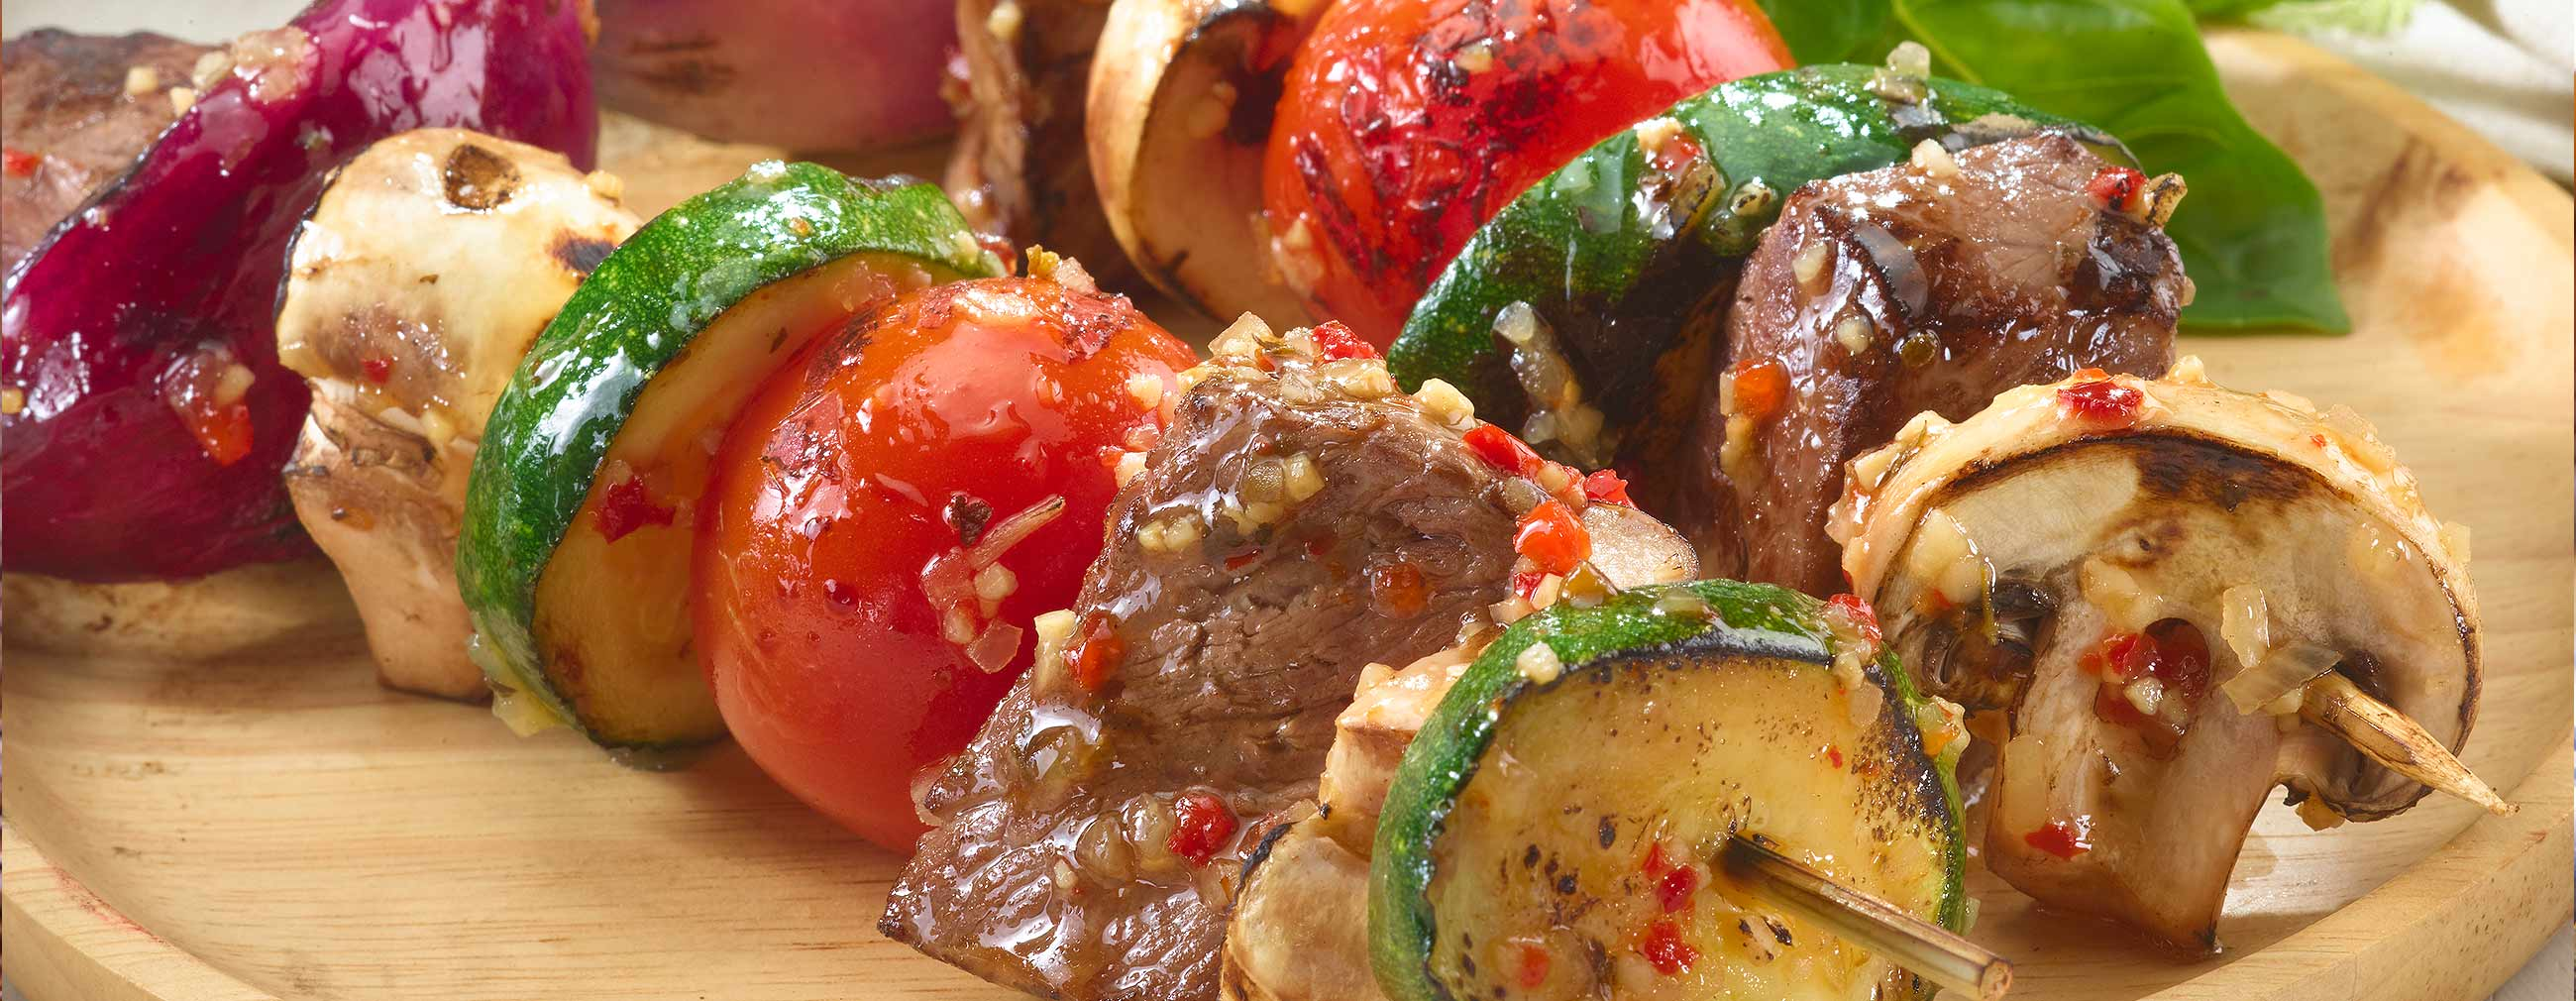 Italian Beef Vegetable Kabobs